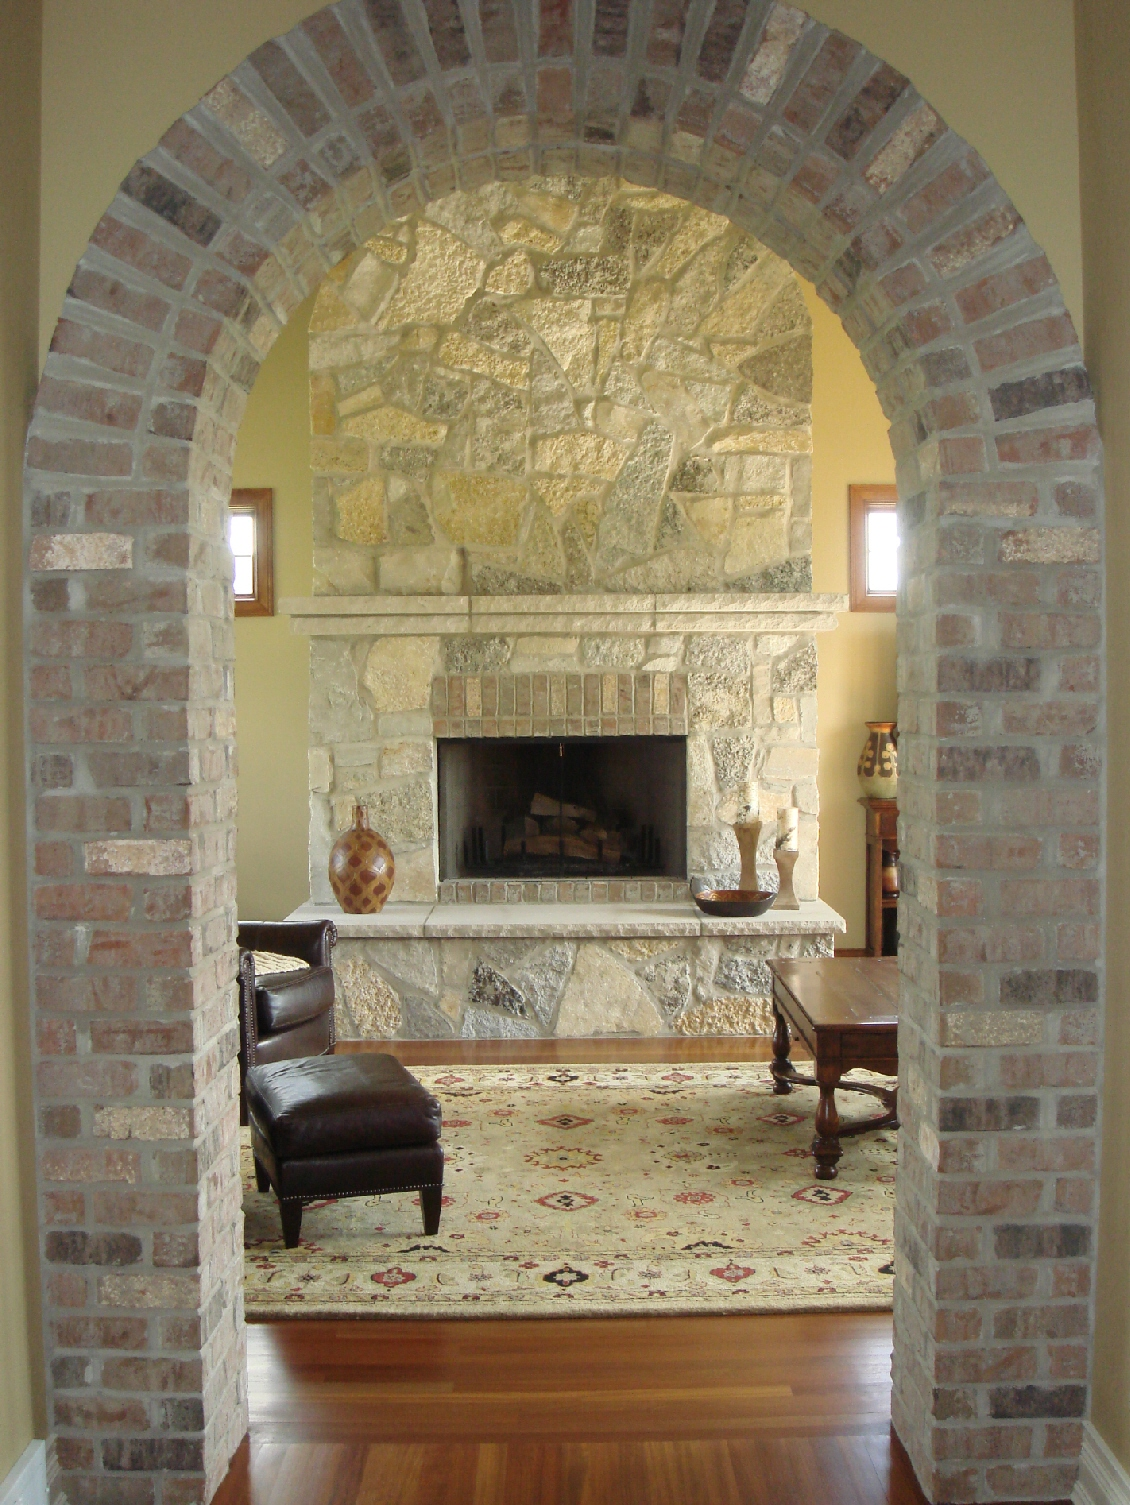 1000 images about brick wallarchway on Pinterest